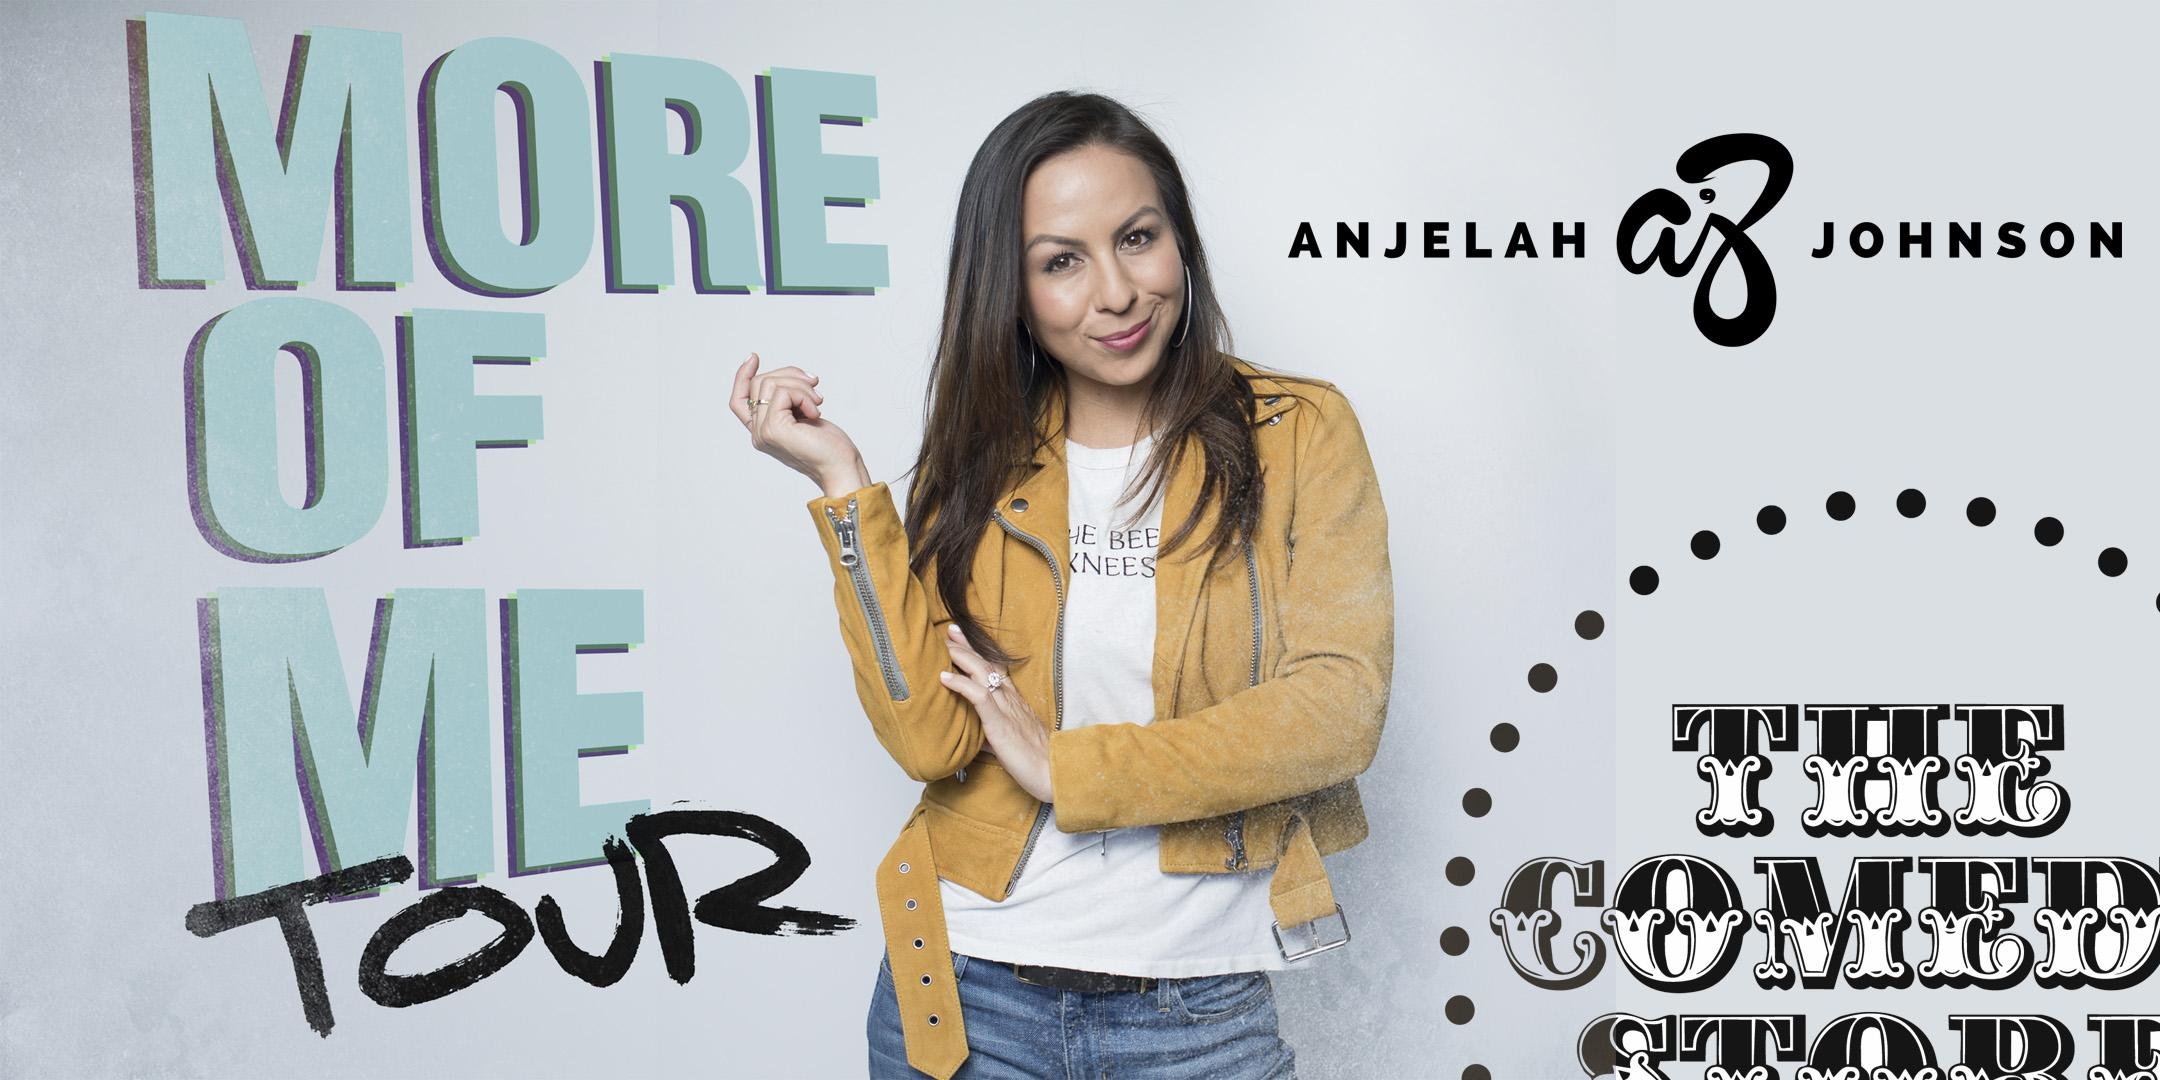 Anjelah Johnson - March 8th - Friday 9:45pm